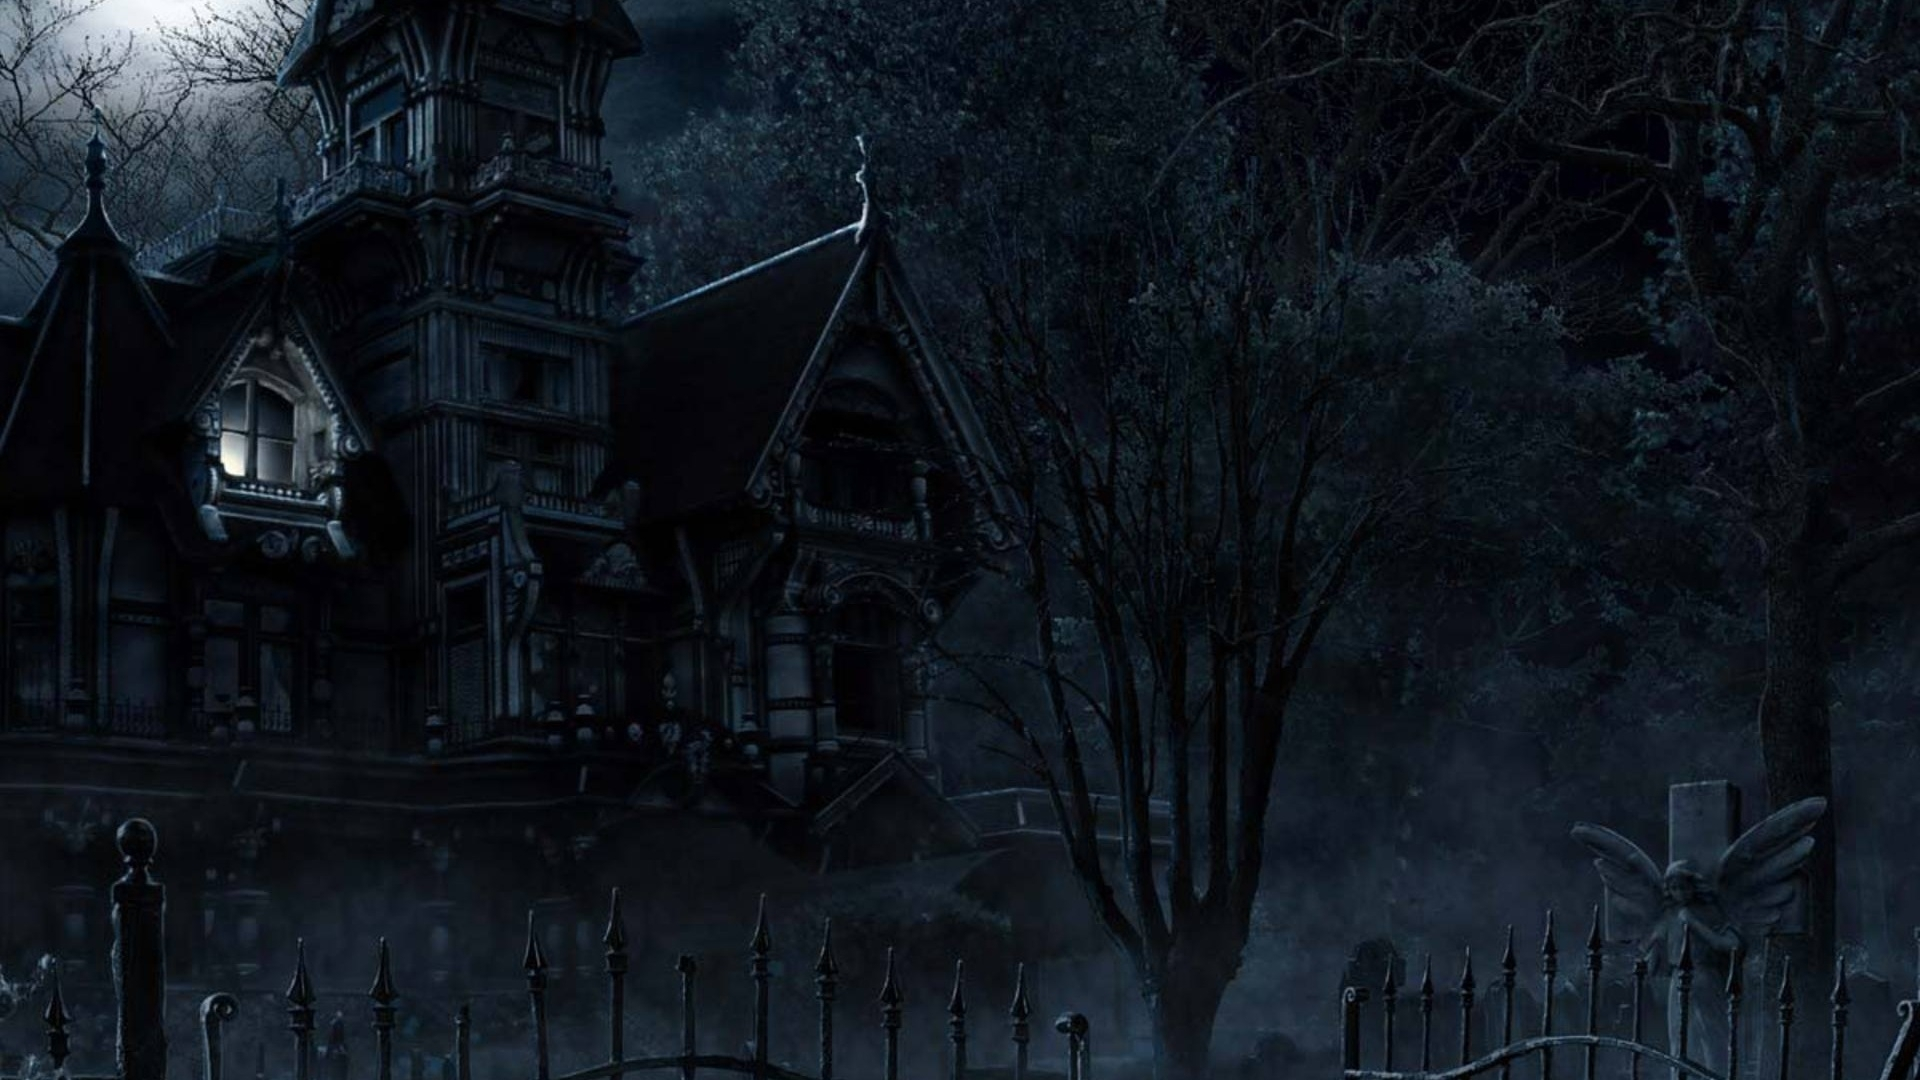 10 Top Scary Halloween Wallpapers Free FULL HD 1920×1080 For PC Desktop 2018 free download google halloween wallpaper for desktop halloween wallpapers 82